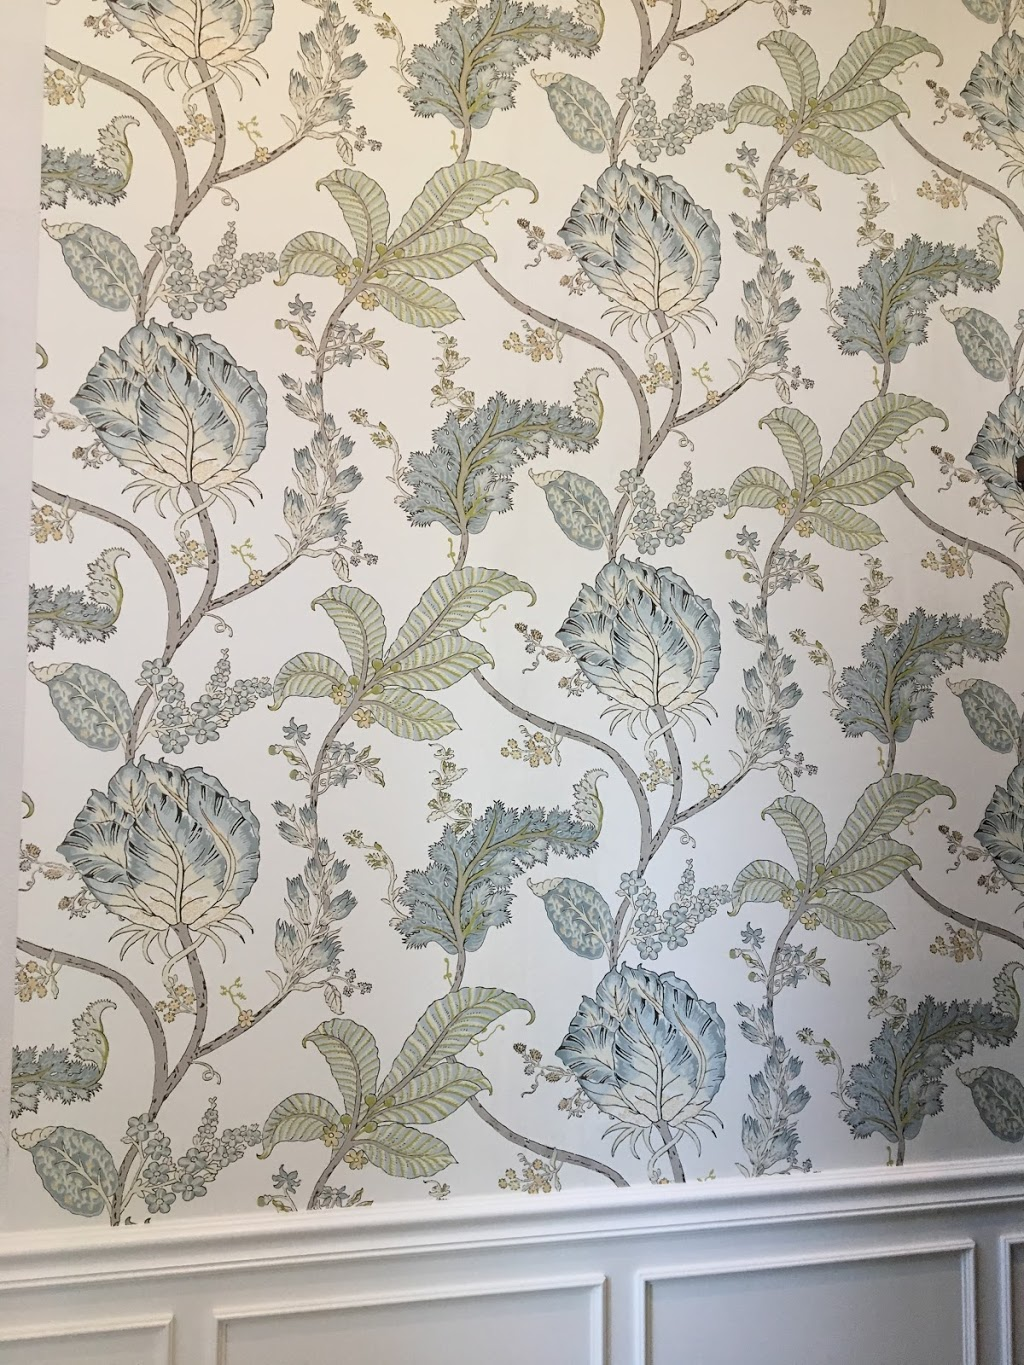 Gail Fishers Wallcovering - home goods store  | Photo 7 of 10 | Address: 1789 E Revere Rd, Fresno, CA 93720, USA | Phone: (559) 433-0727